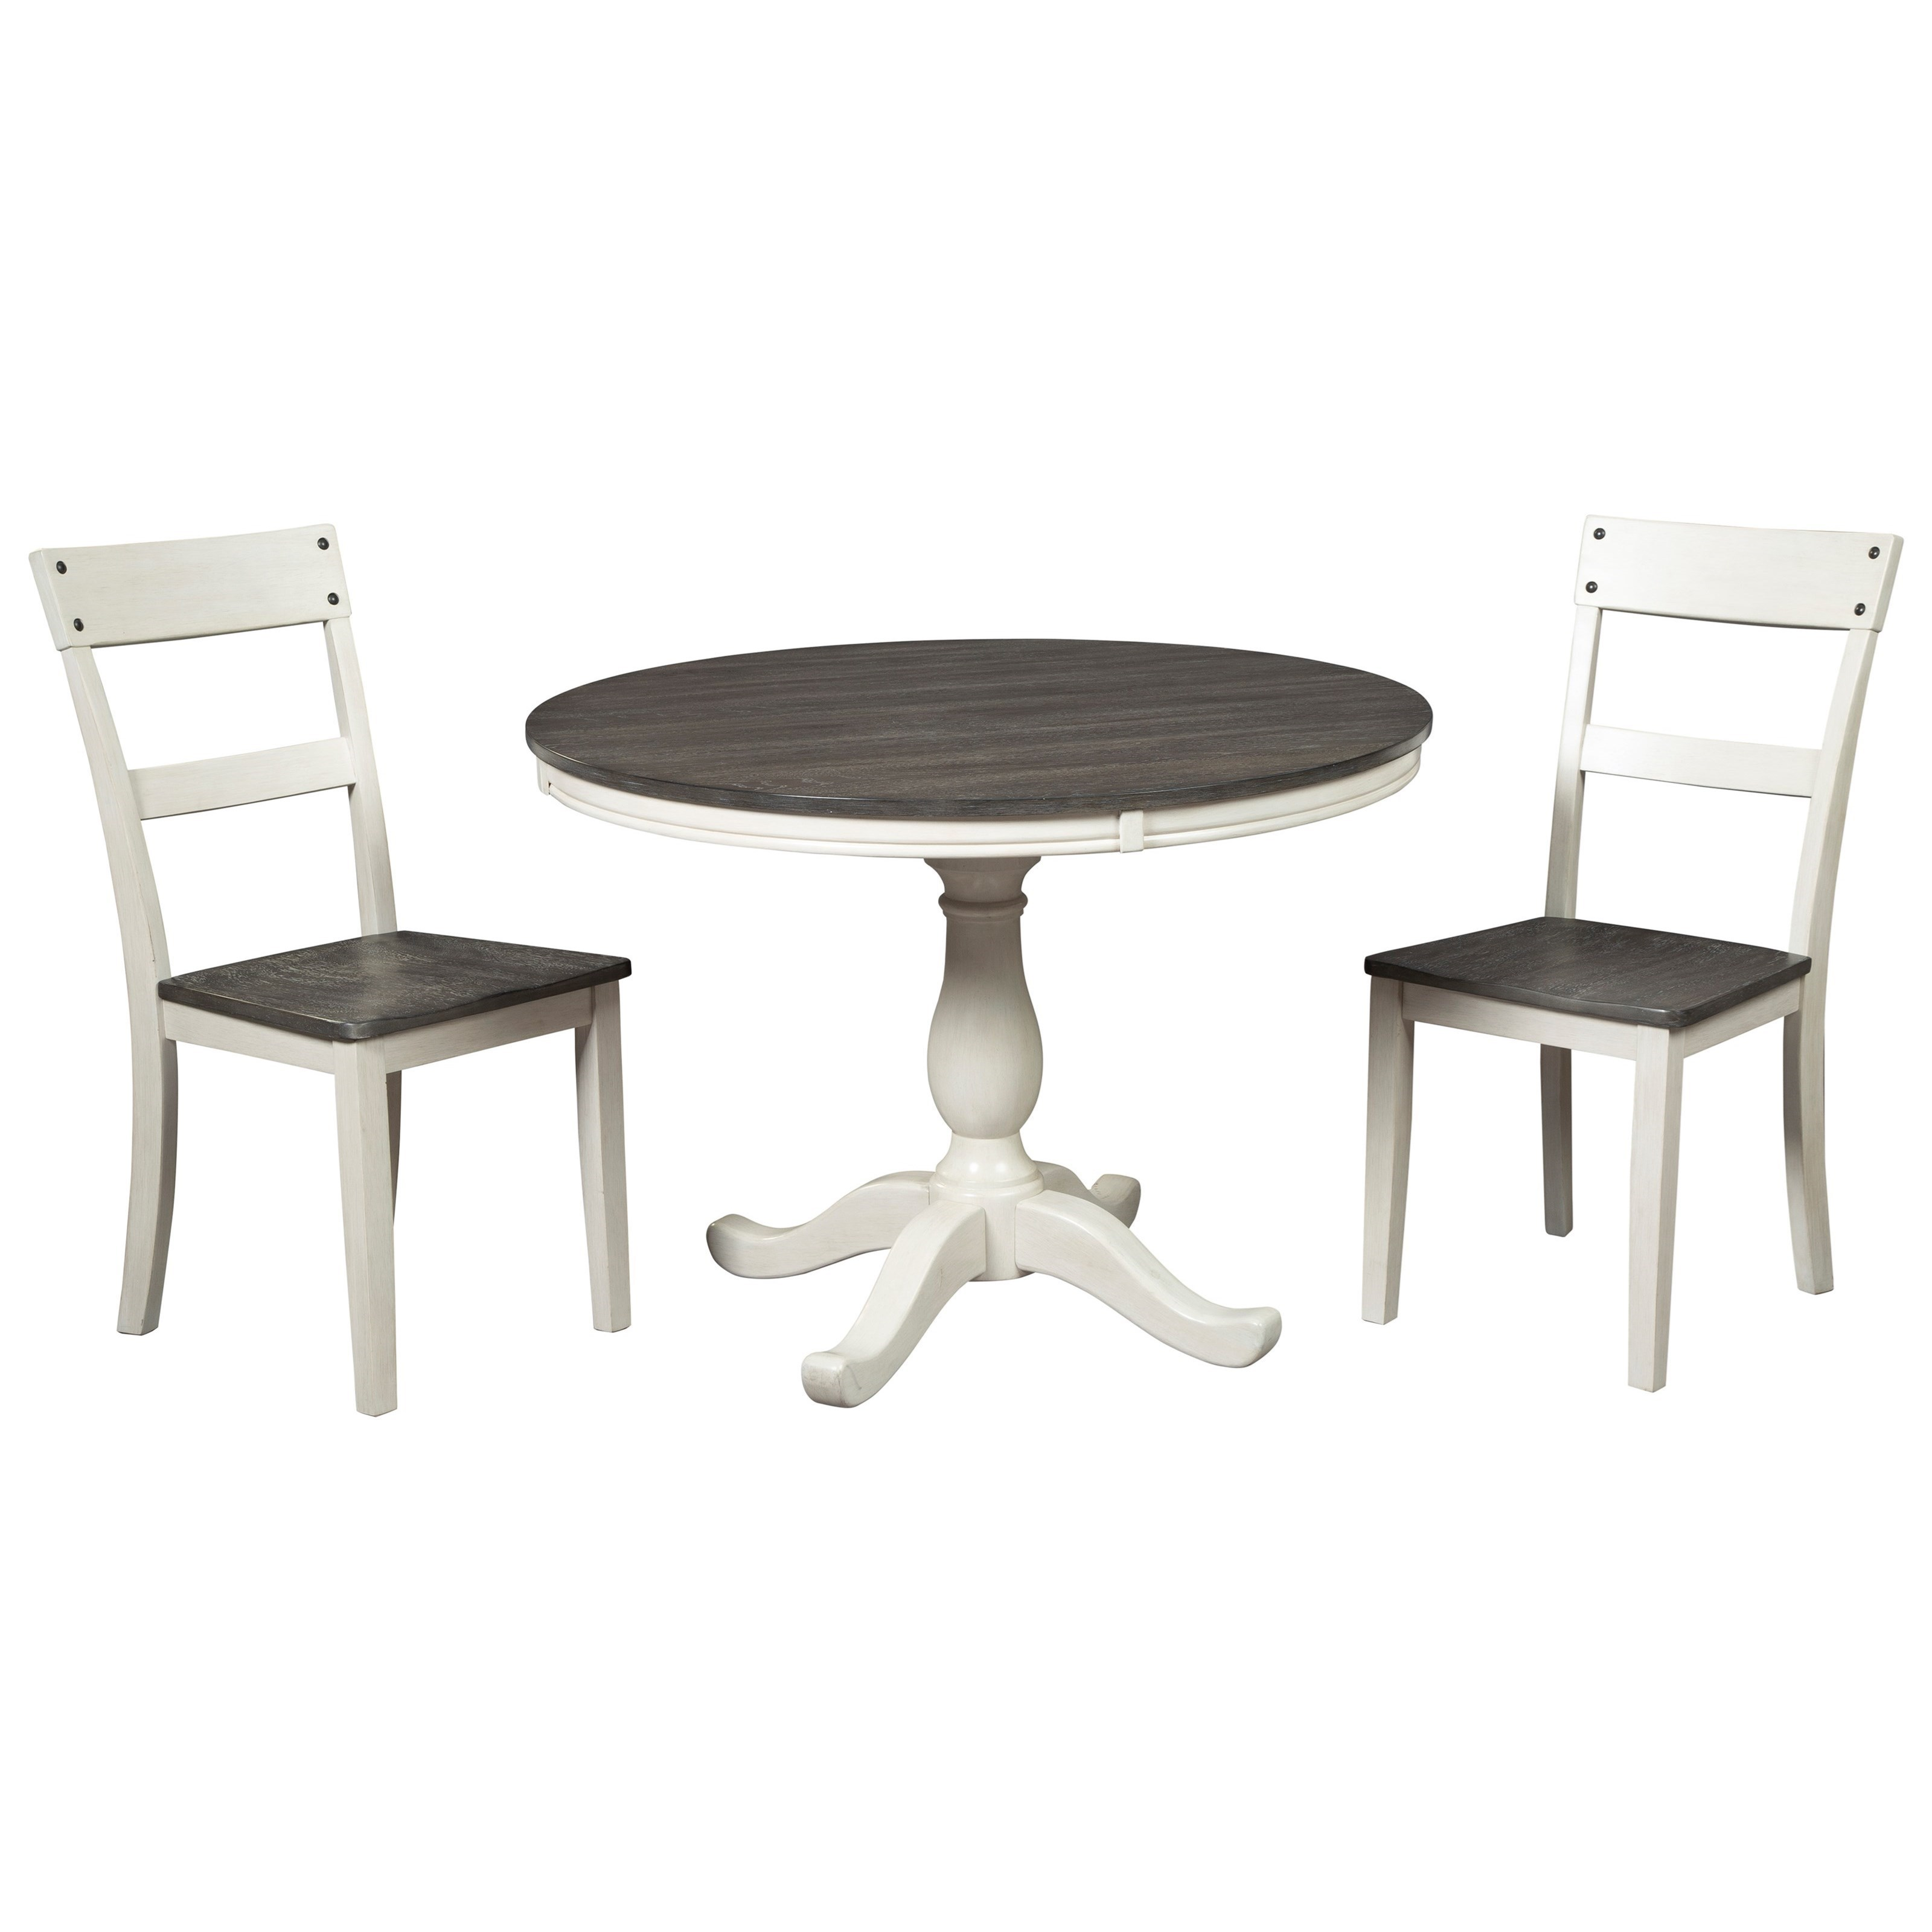 Picture of: Signature Design By Ashley Nelling Farmhouse Two Tone 3 Piece Round Dining Table Set Royal Furniture Dining 3 Piece Sets